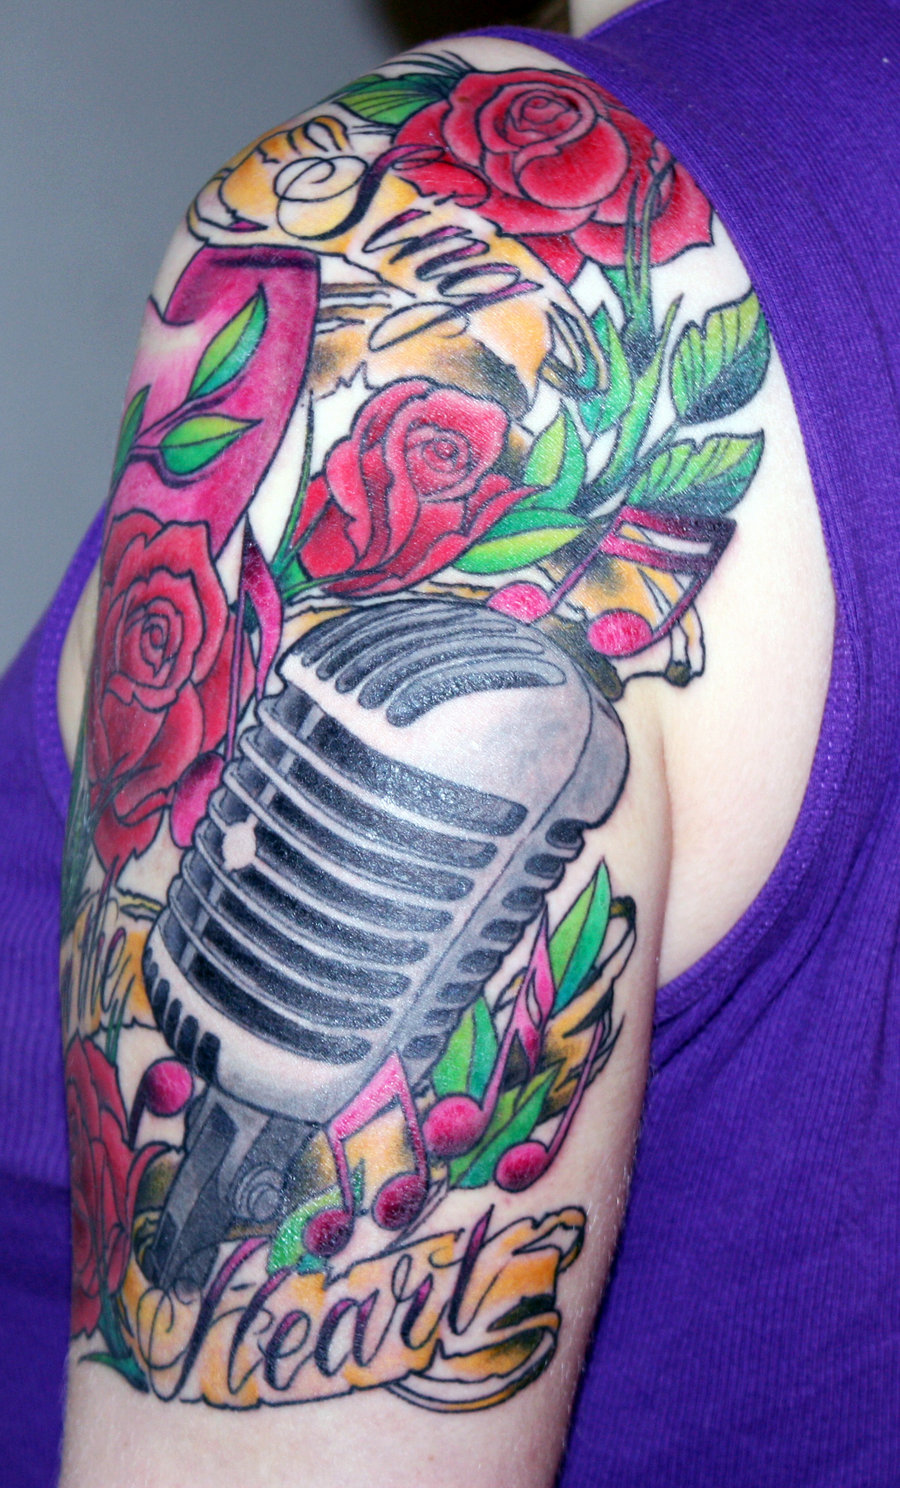 Band Mic Tattoo With Red Roses & Banner